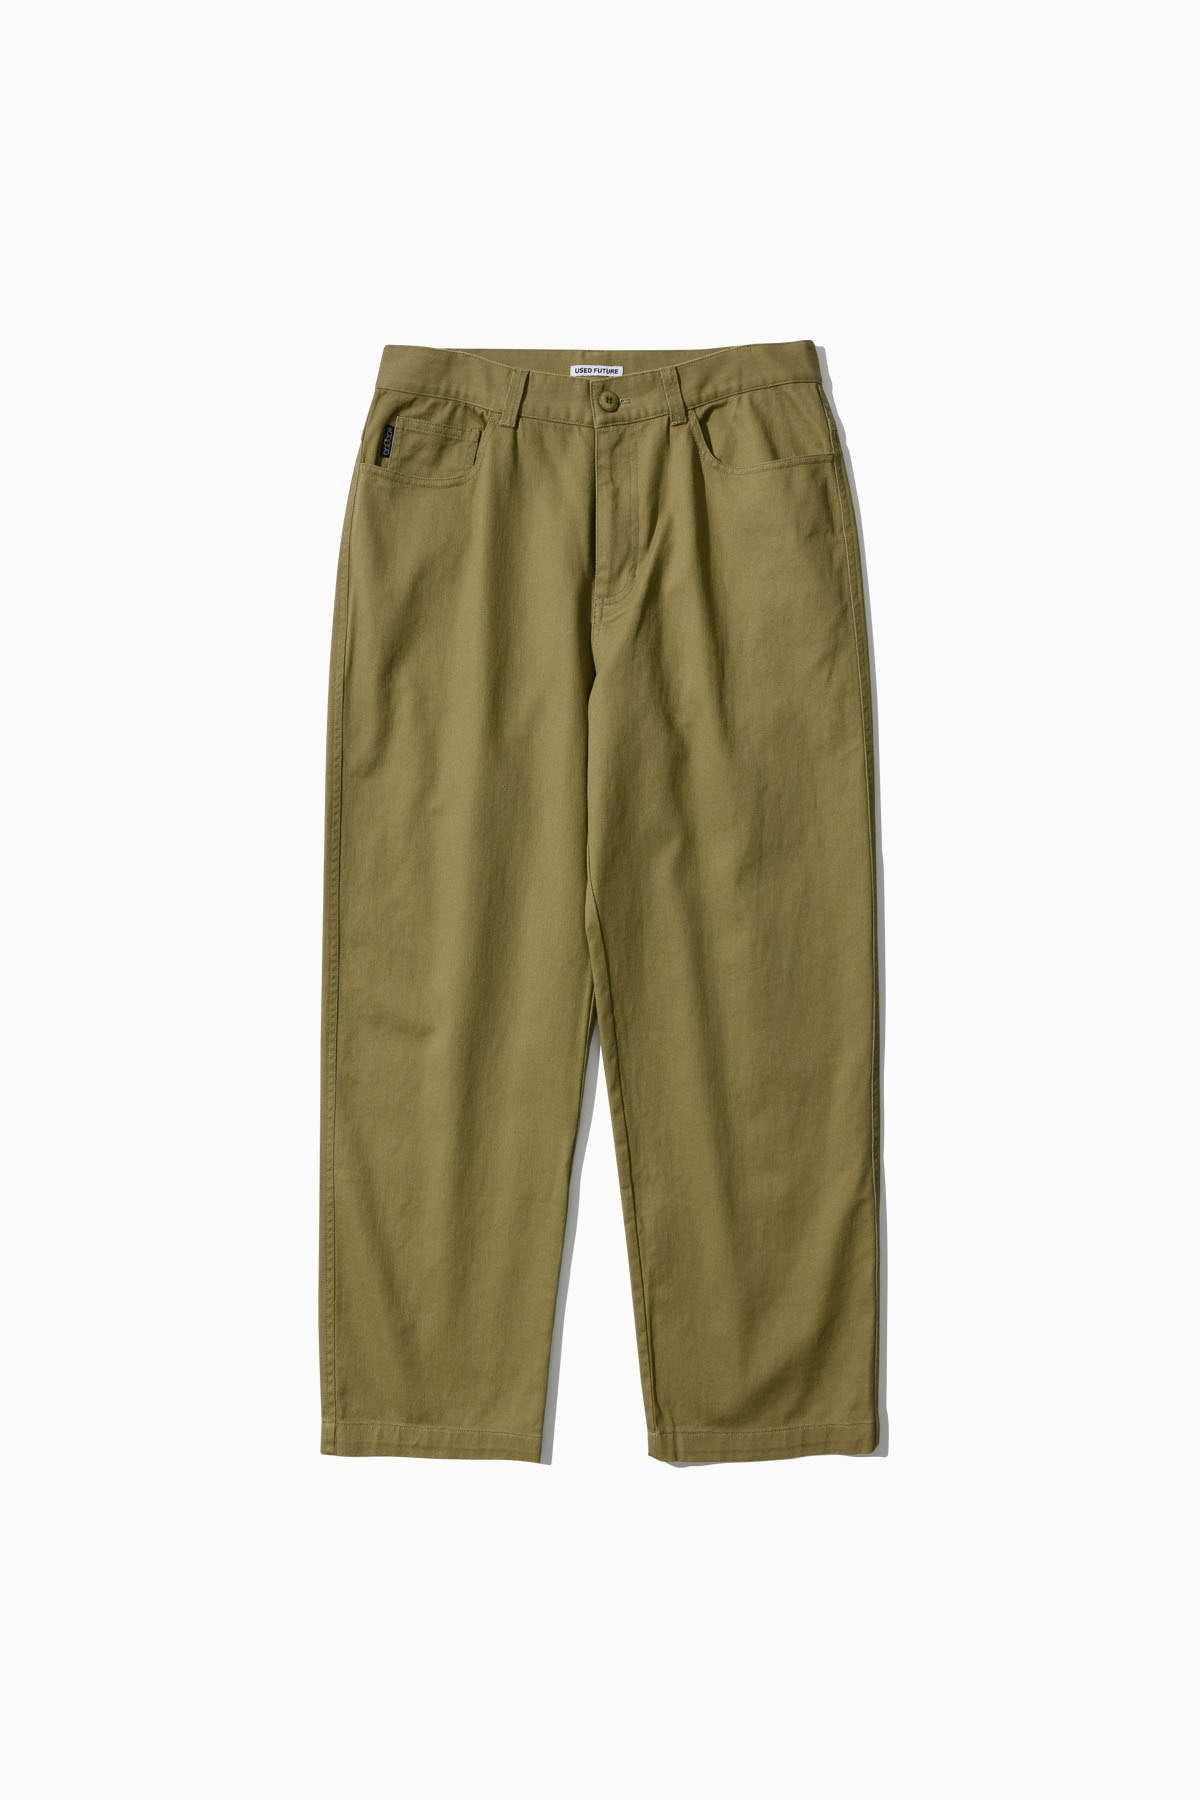 WORK PANTS_KHAKI